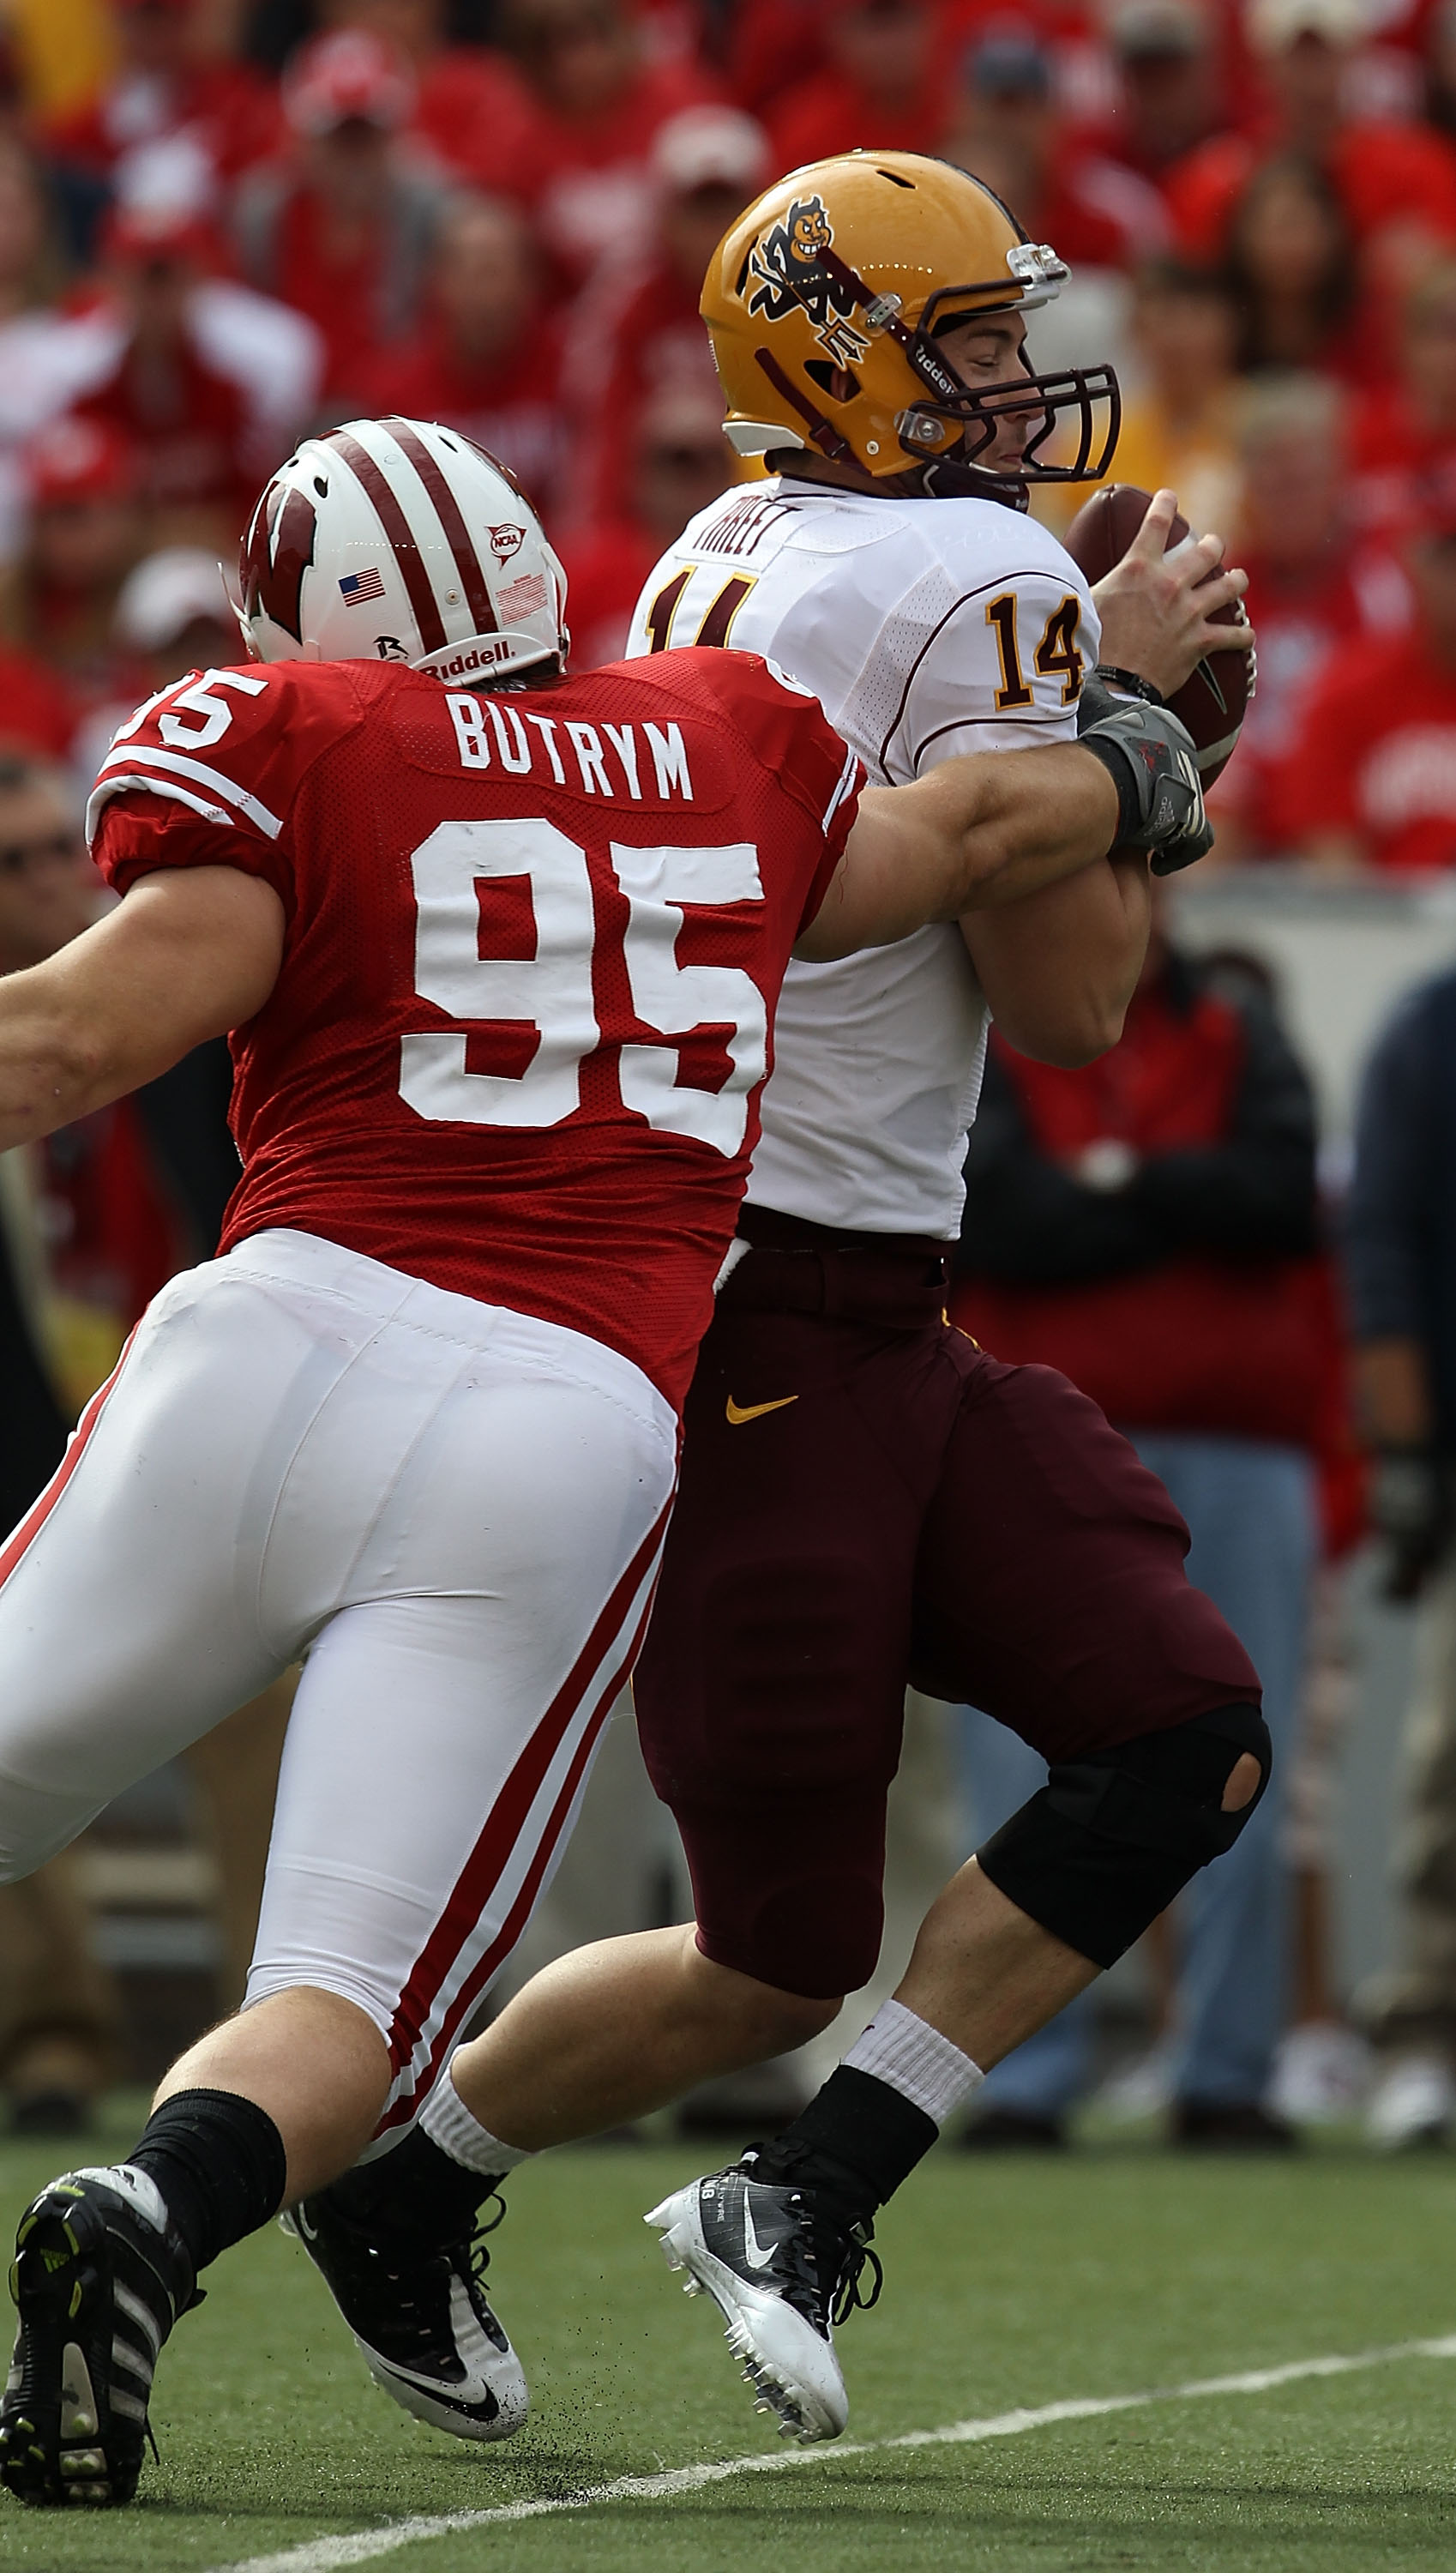 MADISON, WI - SEPTEMBER 18: Patirck Butrym #95 of the Wisconsin Badgers grabs Steven Threet #14 of the Arizona State Sun Devils as he looks for a receiver at Camp Randall Stadium on September 18, 2010 in Madison, Wisconsin. Wisconsin defeated Arizona Stat